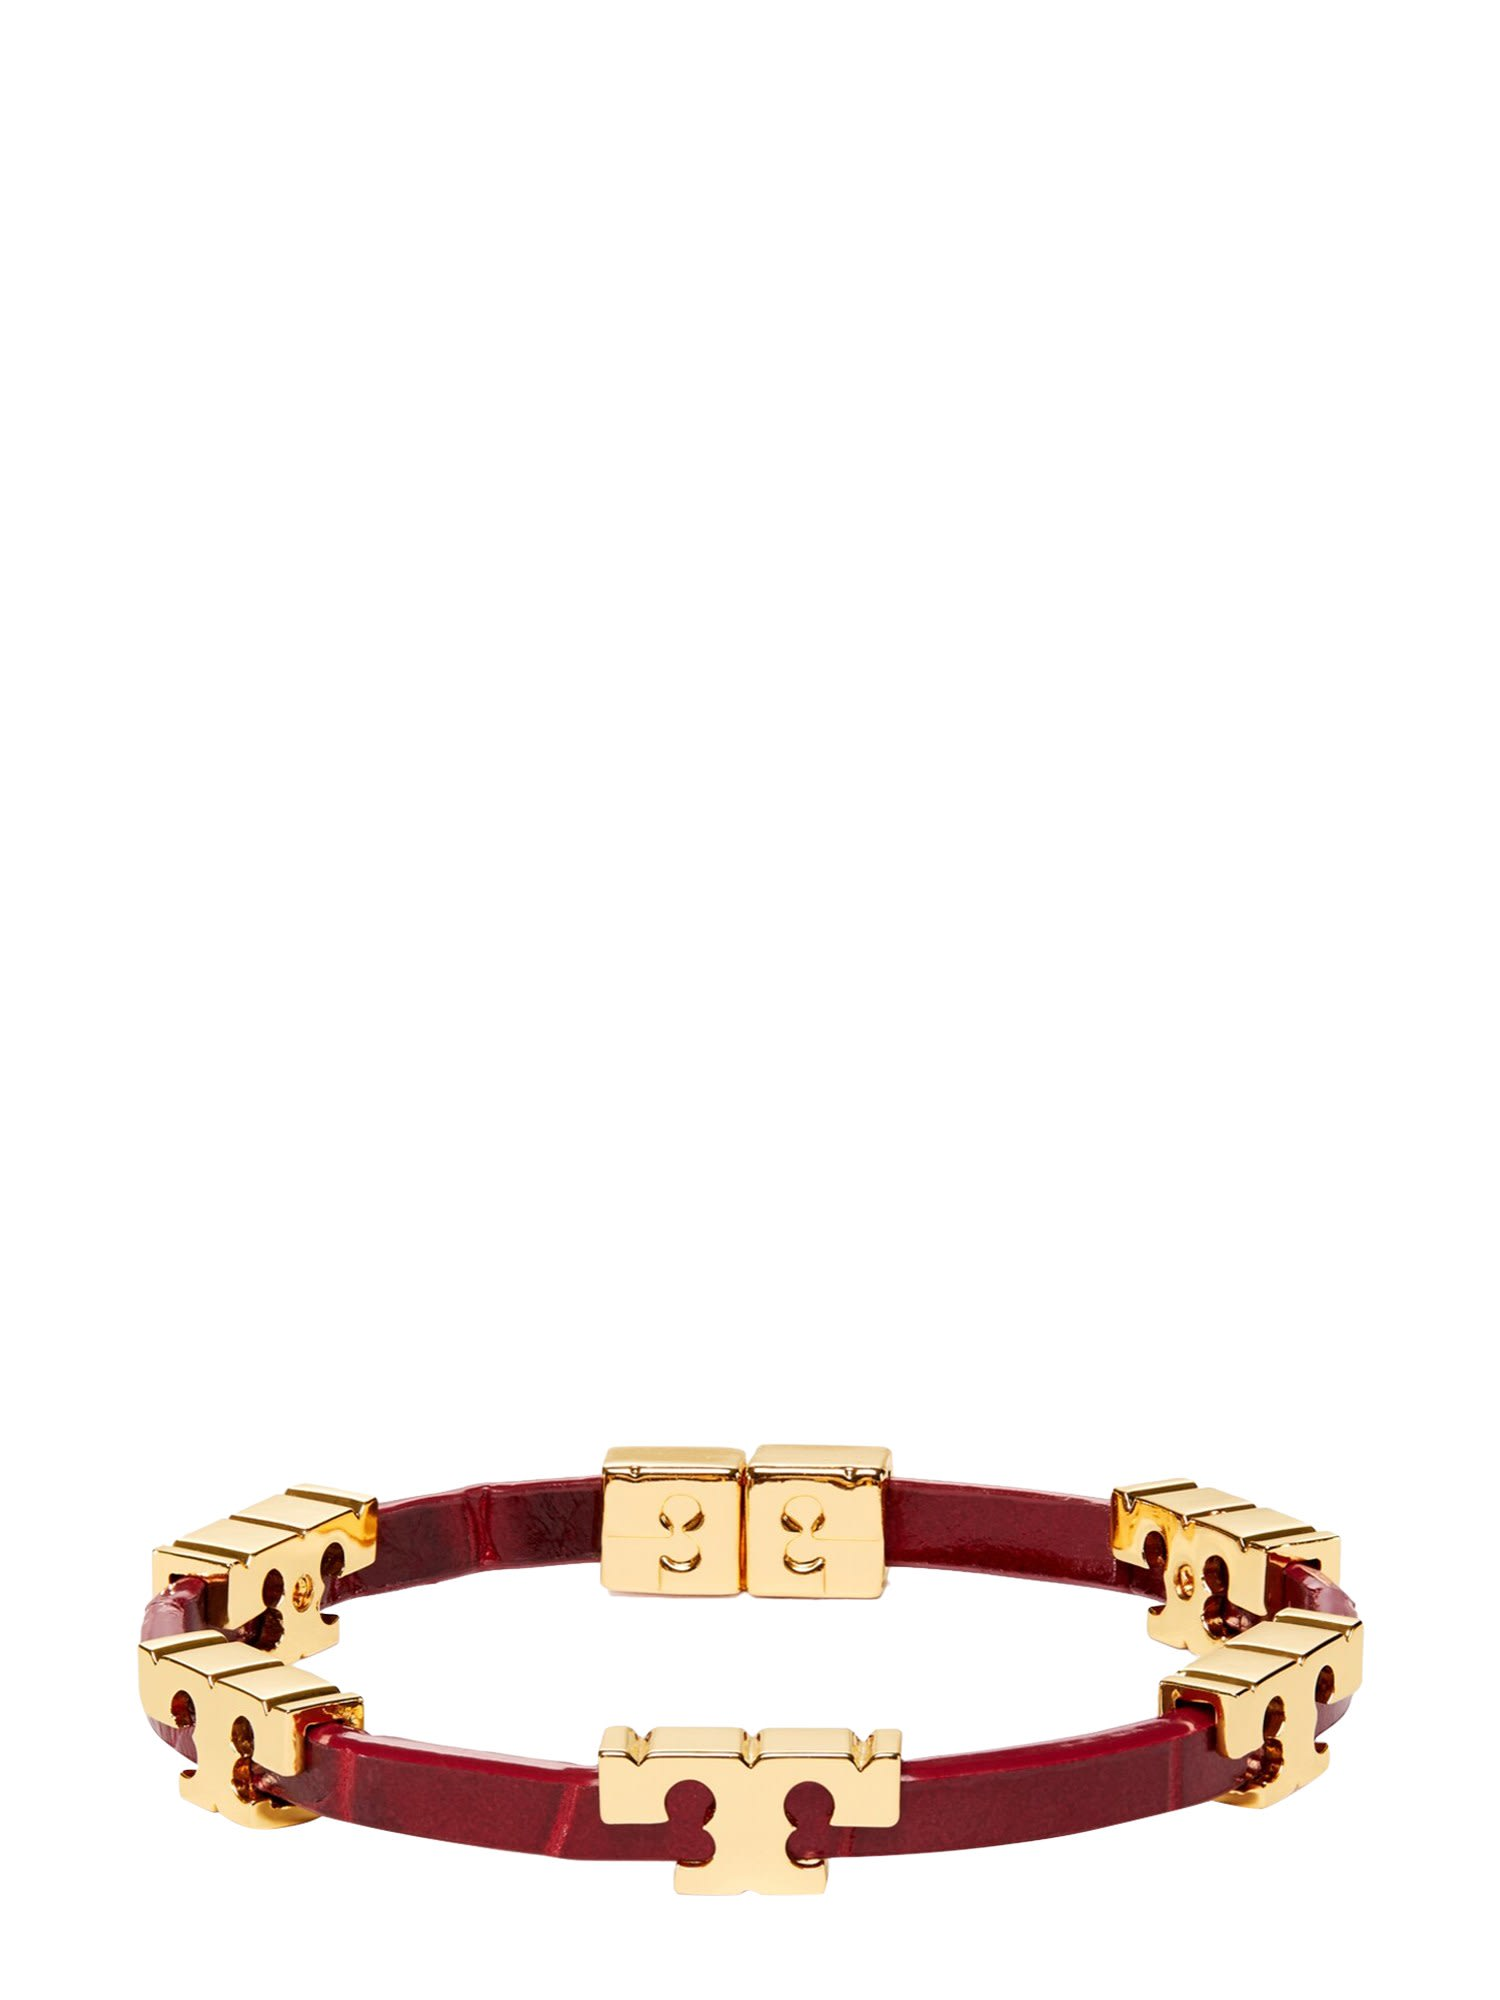 Tory Burch Single Bracelet With Logo